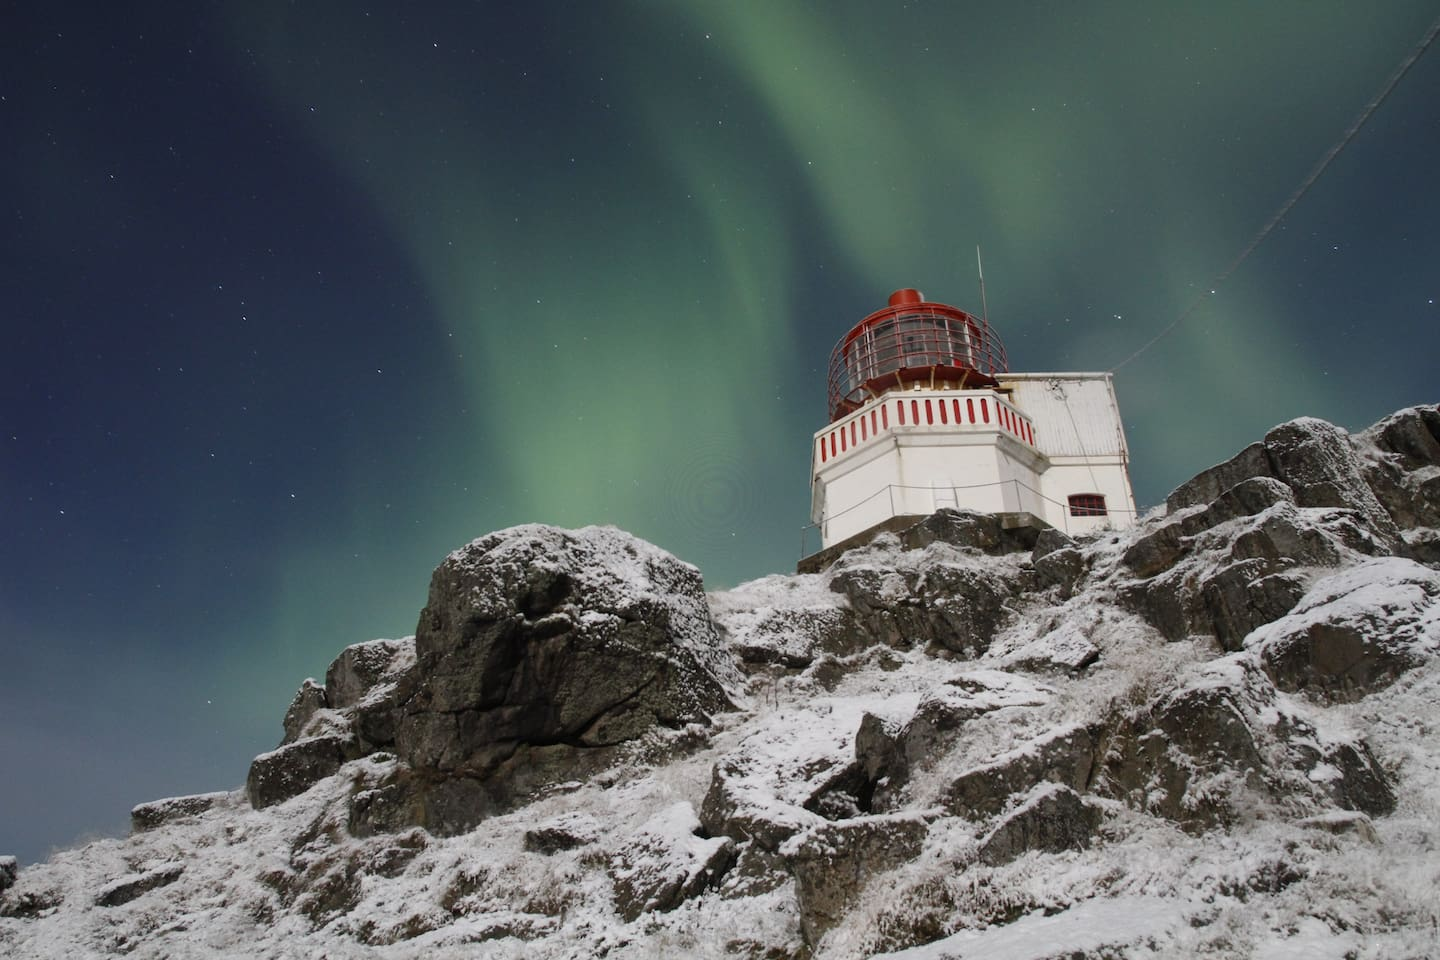 Northern lights over the lighthouse tower. These Auroras can be seen from October until March.